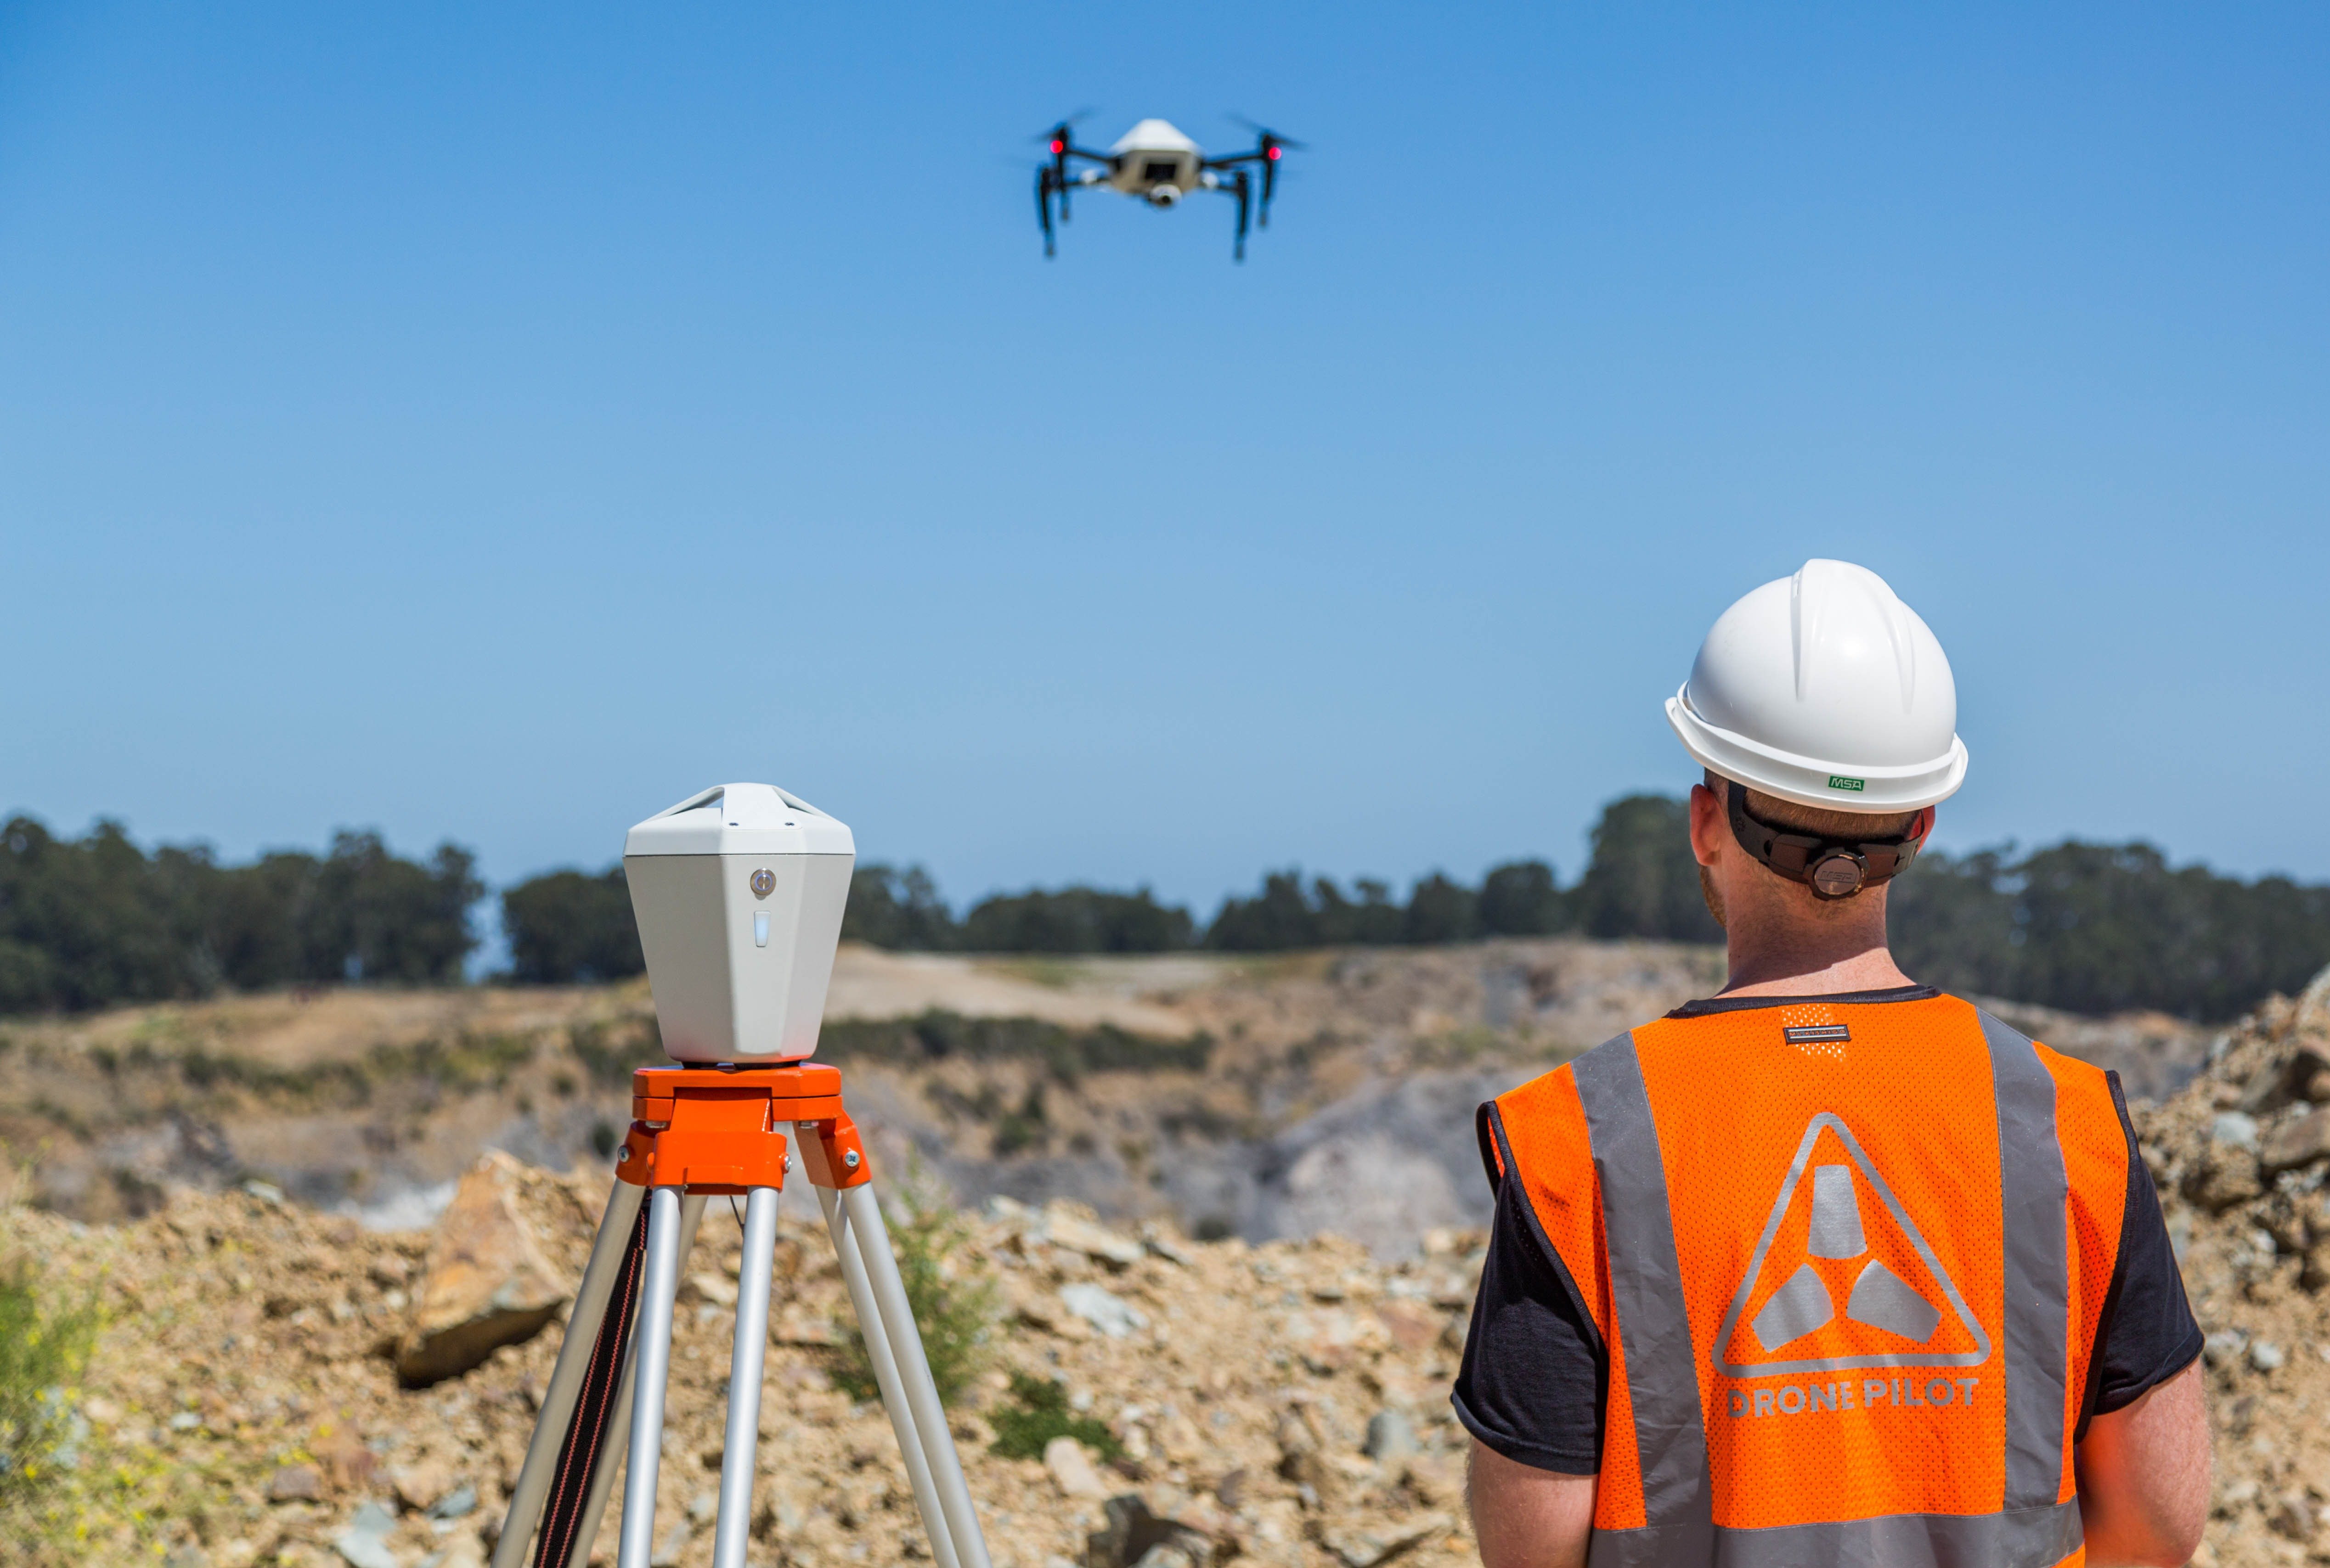 Using the Skycatch Edge1 Smart Base Station and Explore1 Drone